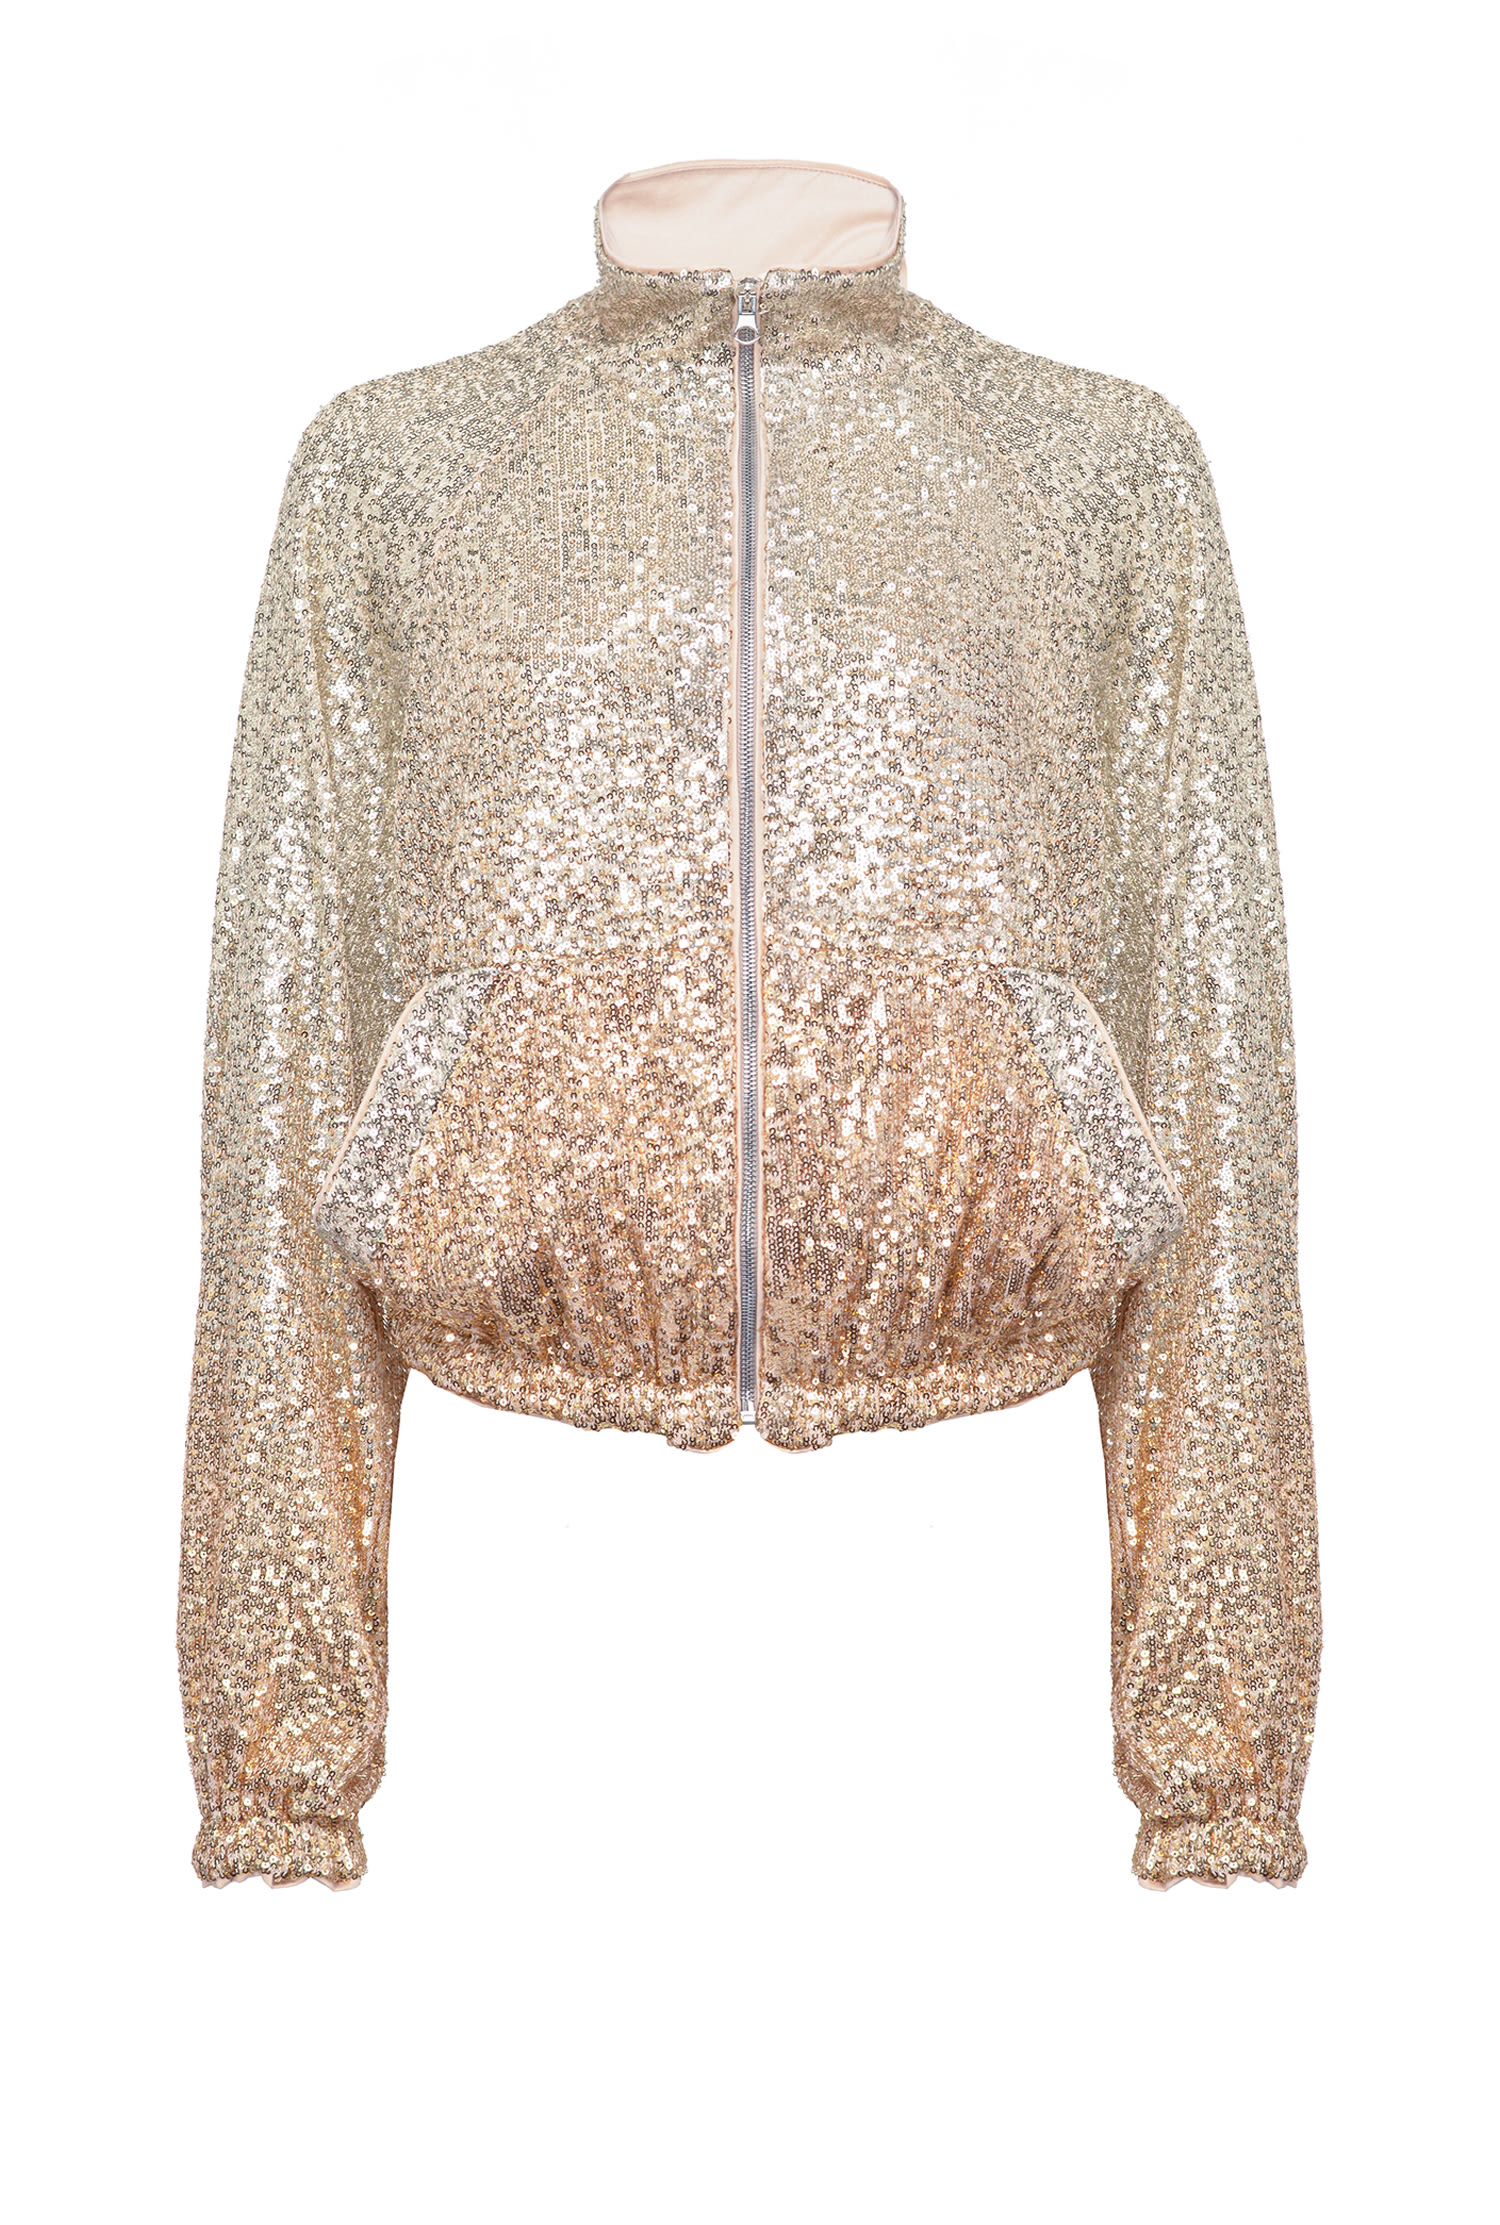 SHOPPING ON LINE PINKO GIACCA FULL PAILLETTES SFUMATE NEW COLLECTION WOMEN'S FALL WINTER 2020/2021